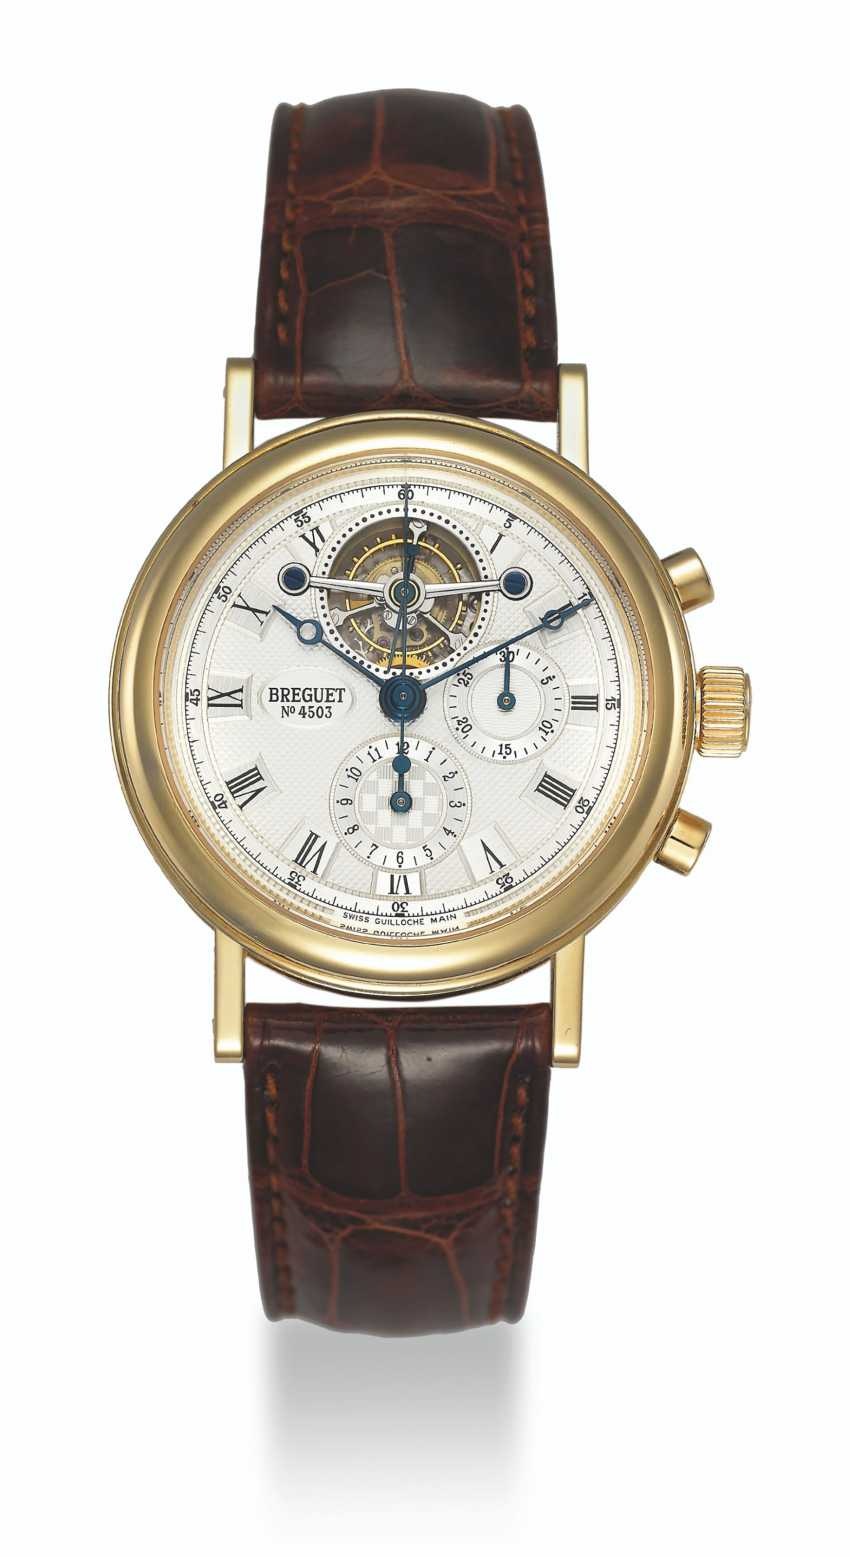 BREGUET, GOLD TOURBILLON CHRONOGRAPH, REF. 3577 - photo 1